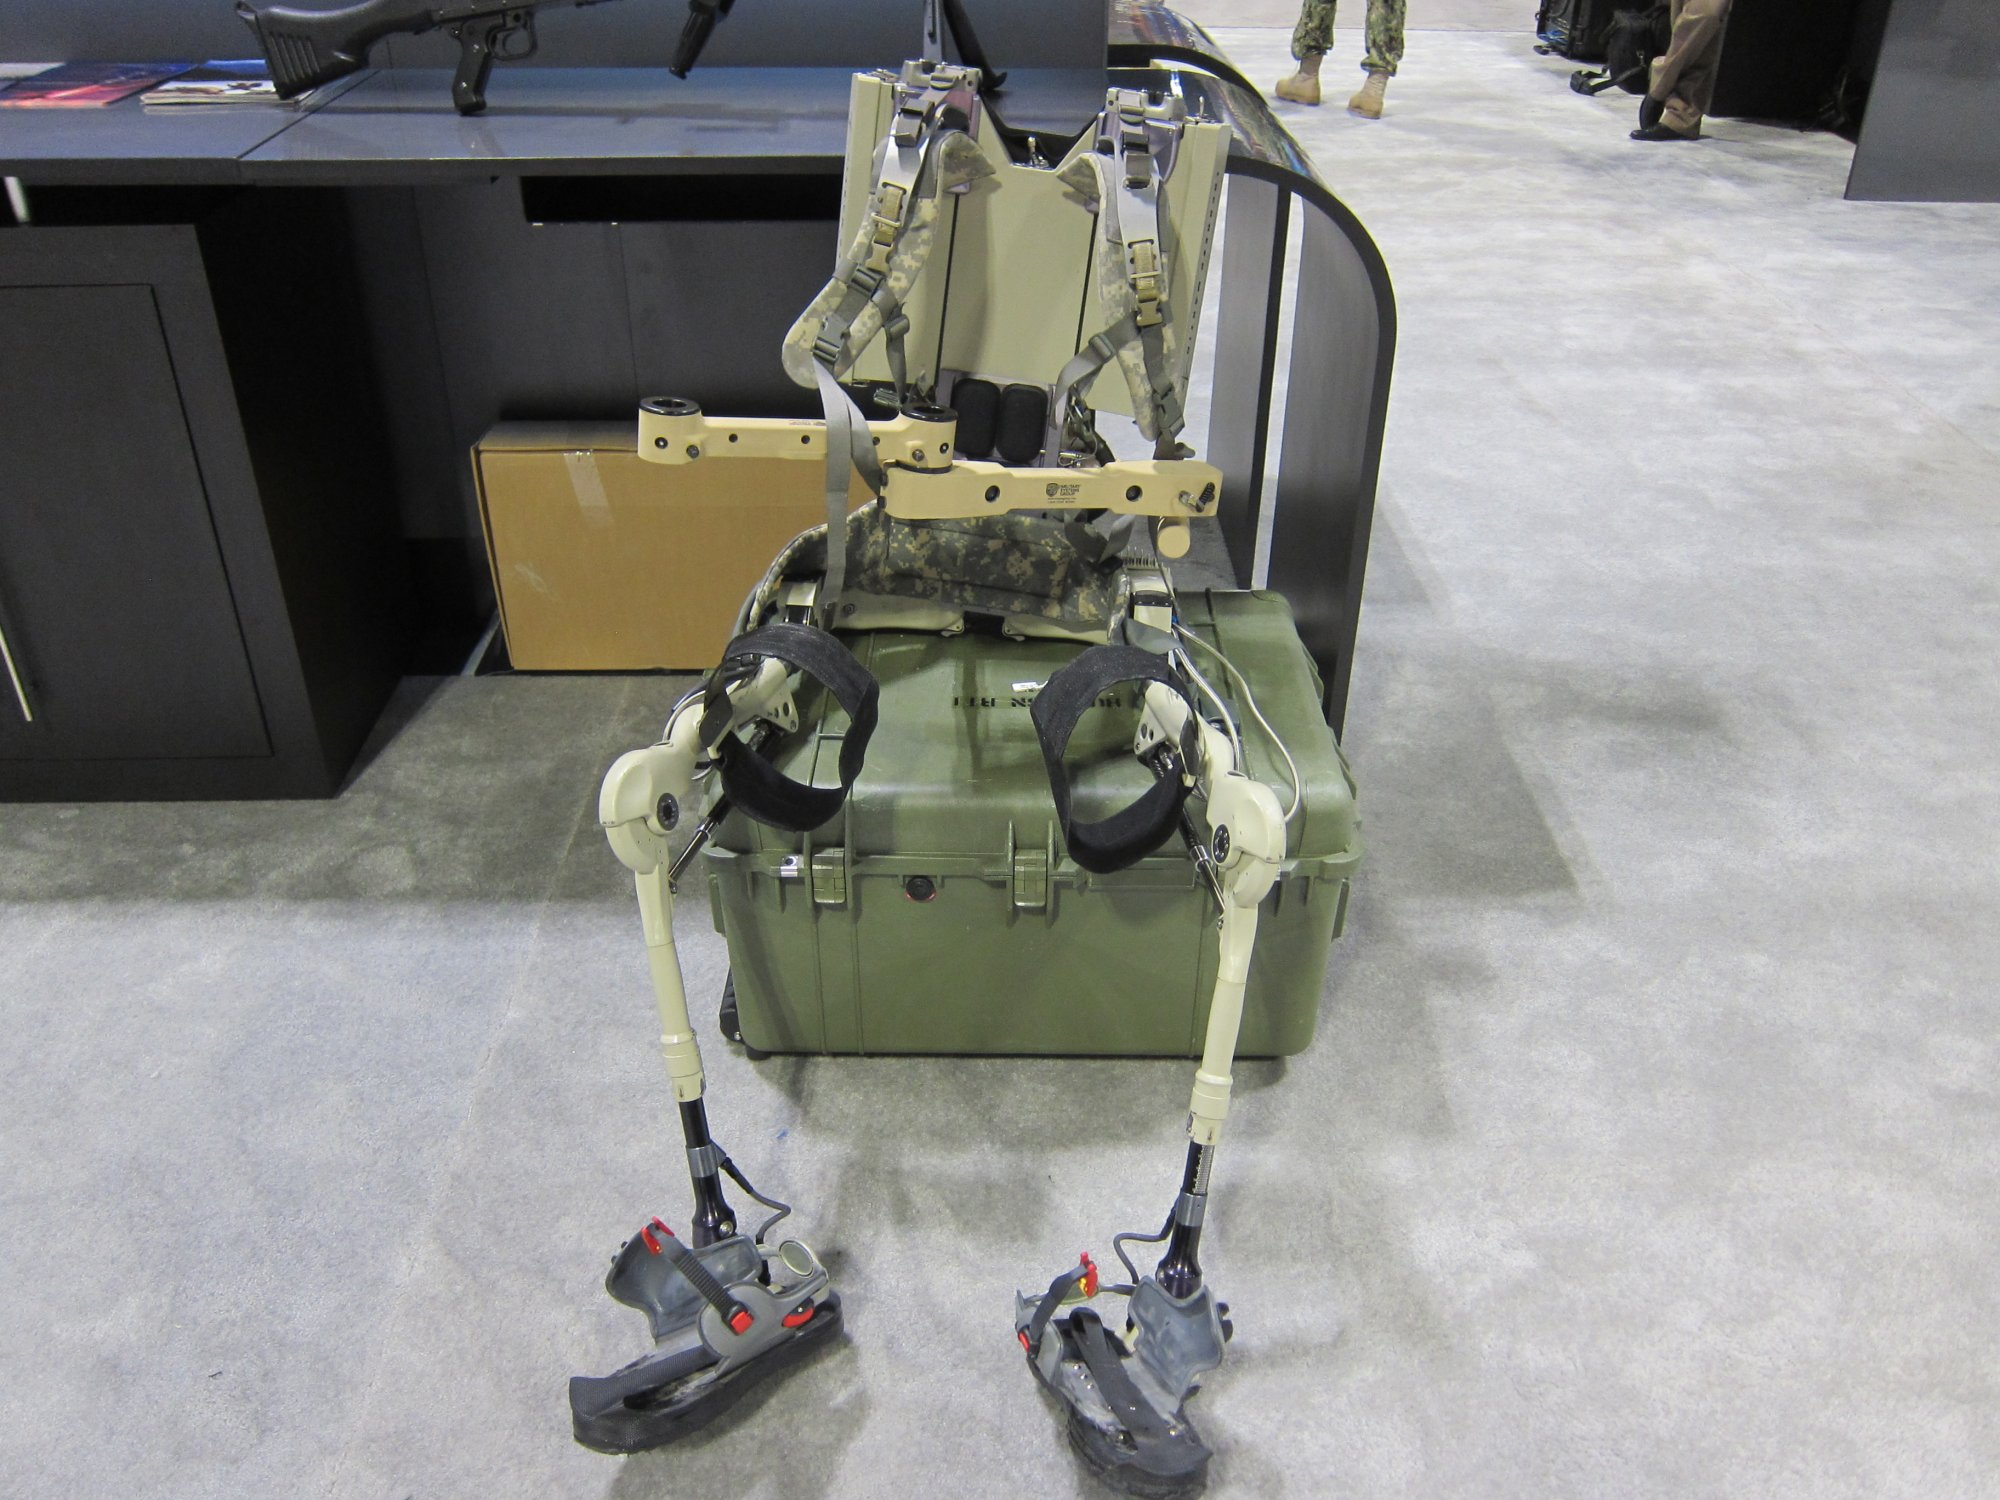 Lockheed Martin HULC (Human Universal Load Carrier) Anthropomorphic Robotic Exoskeleton for Future Military Special Operations Forces (SOF) Warfare at SOFIC 2012 (Video!)